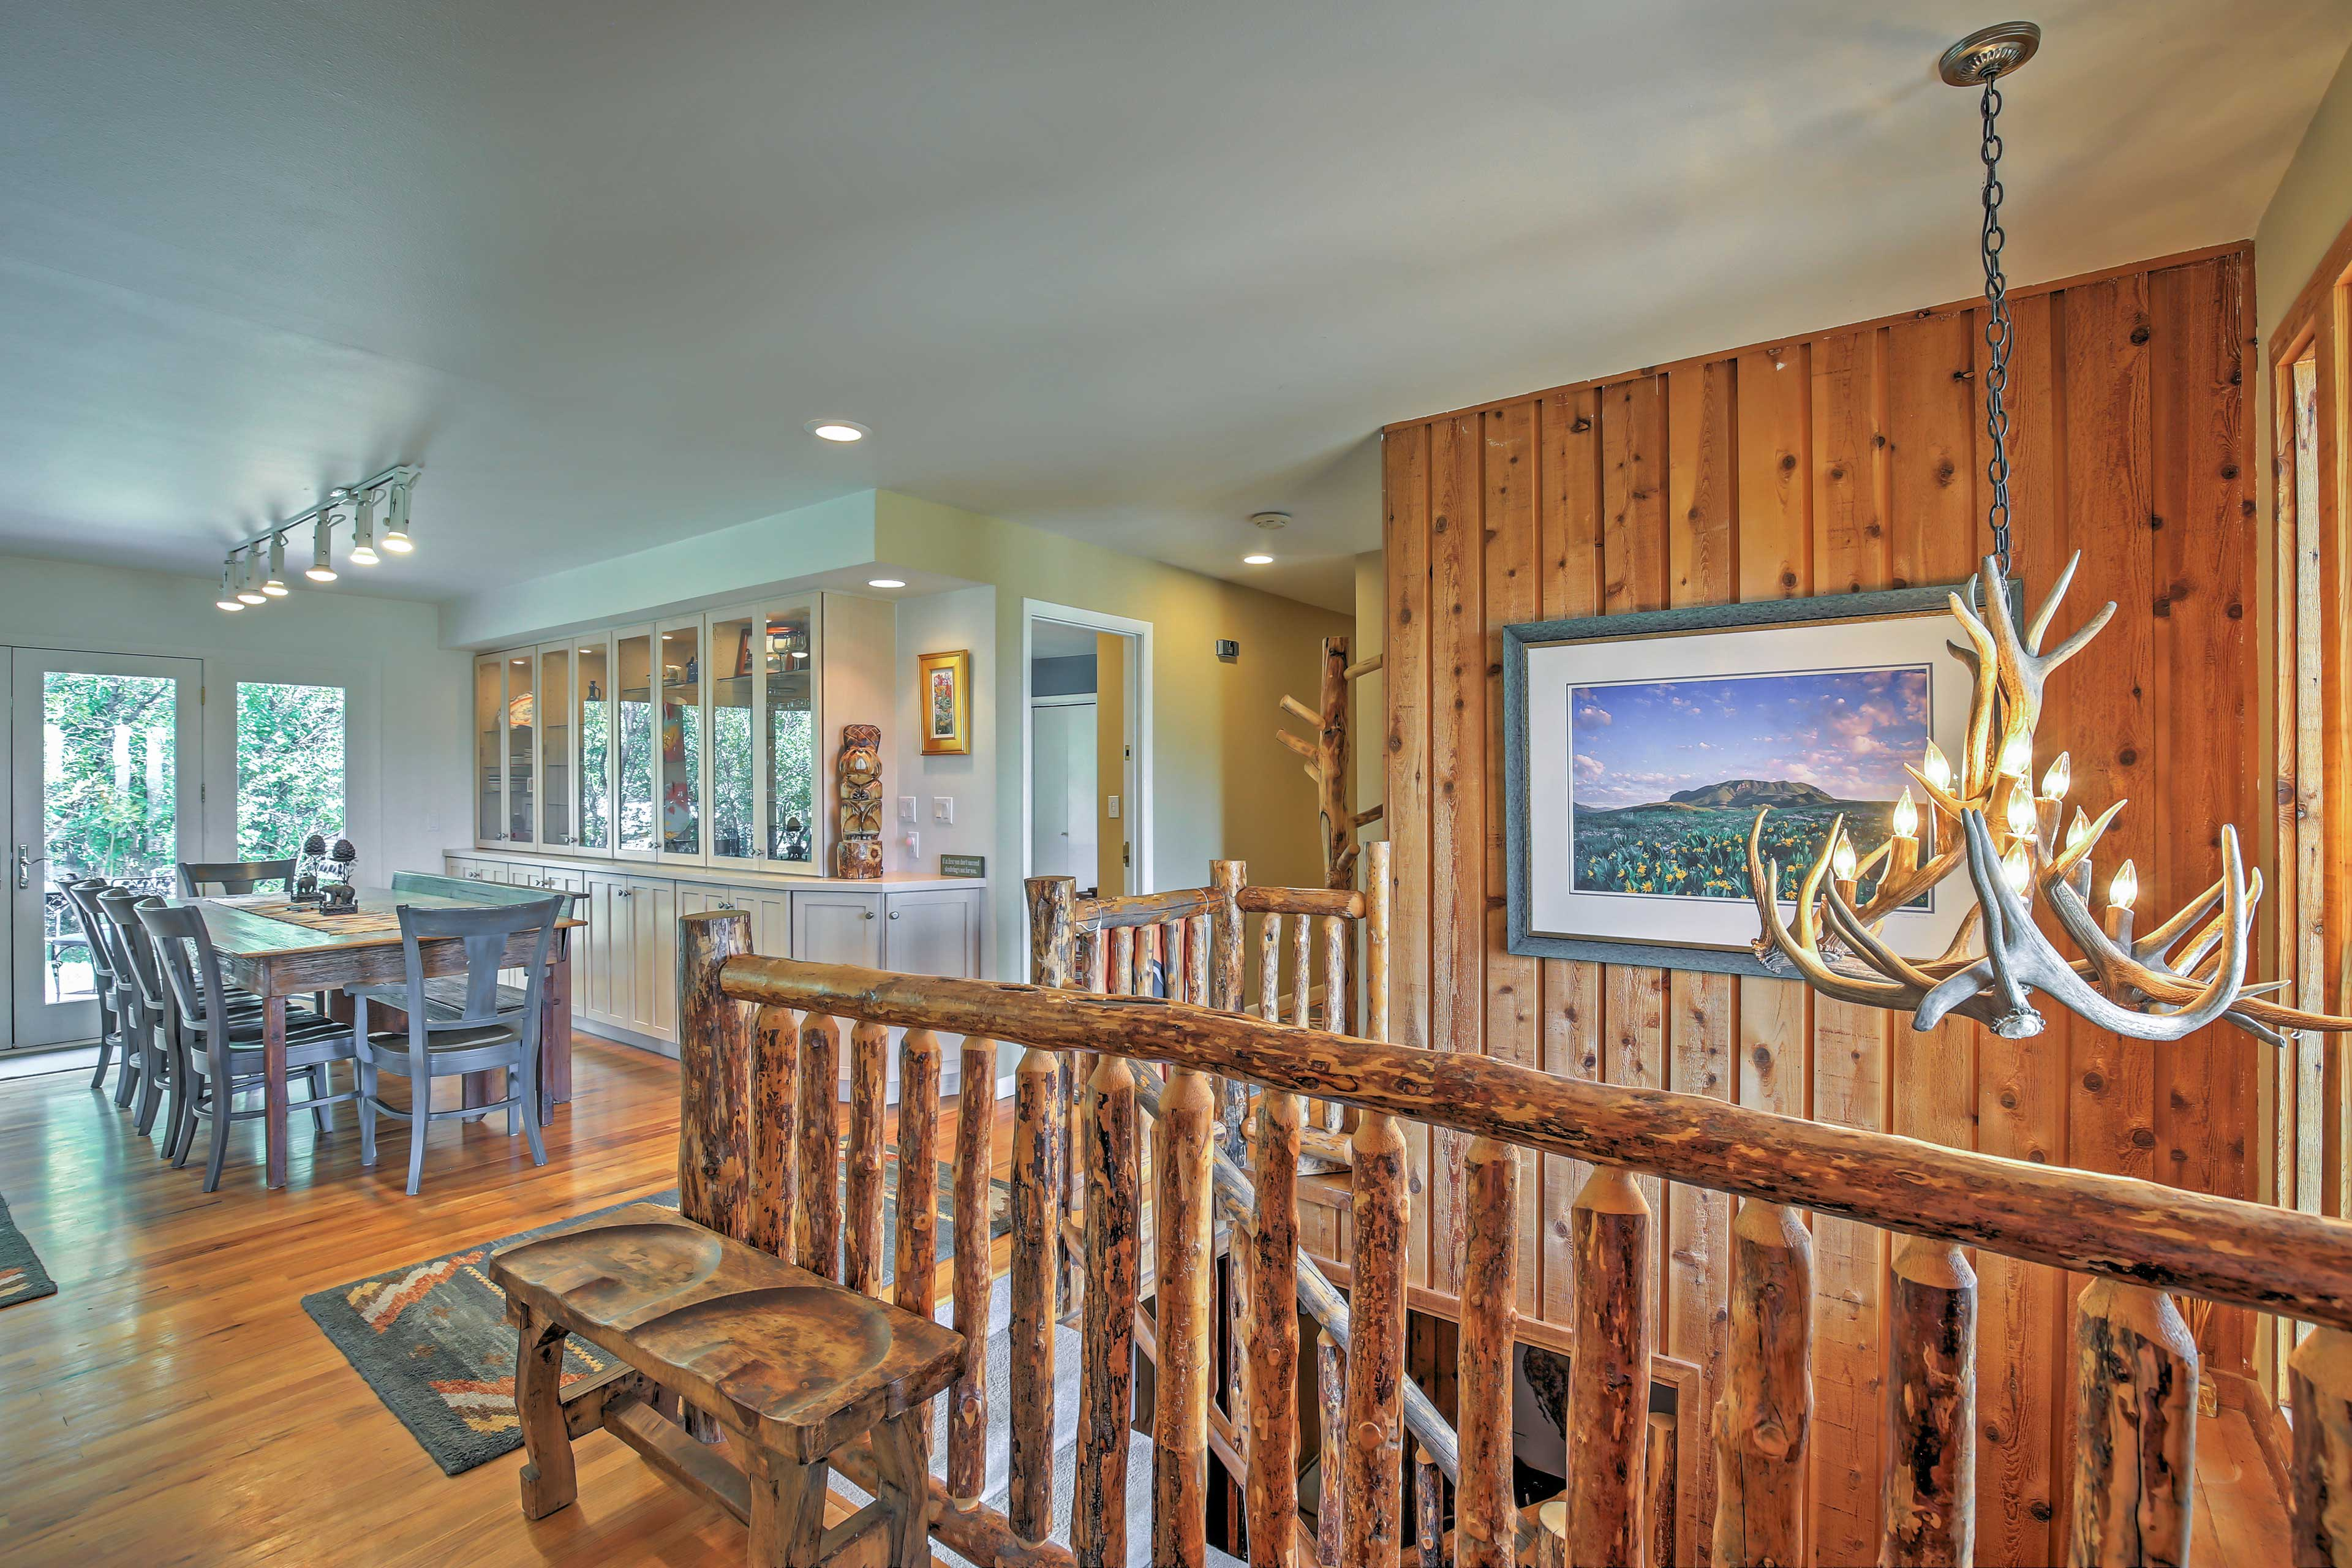 Unique wood decor ties together this quintessentially Colorado space.